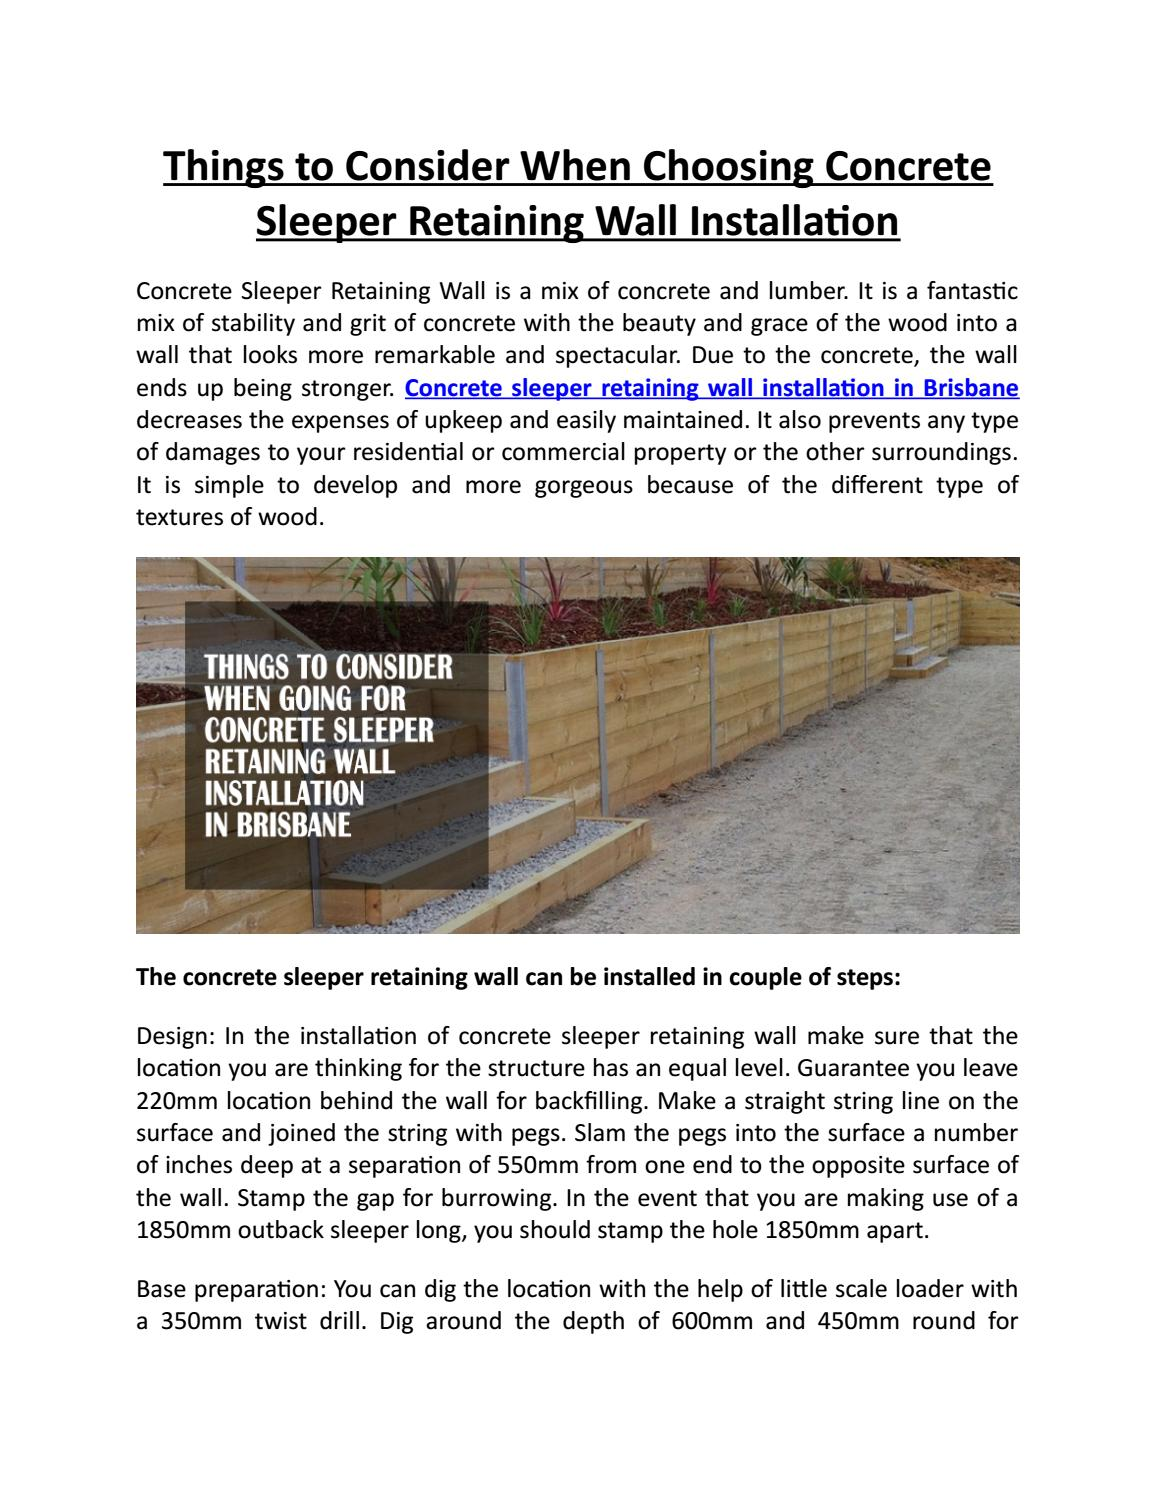 Things to Consider When Choosing Concrete Sleeper Retaining